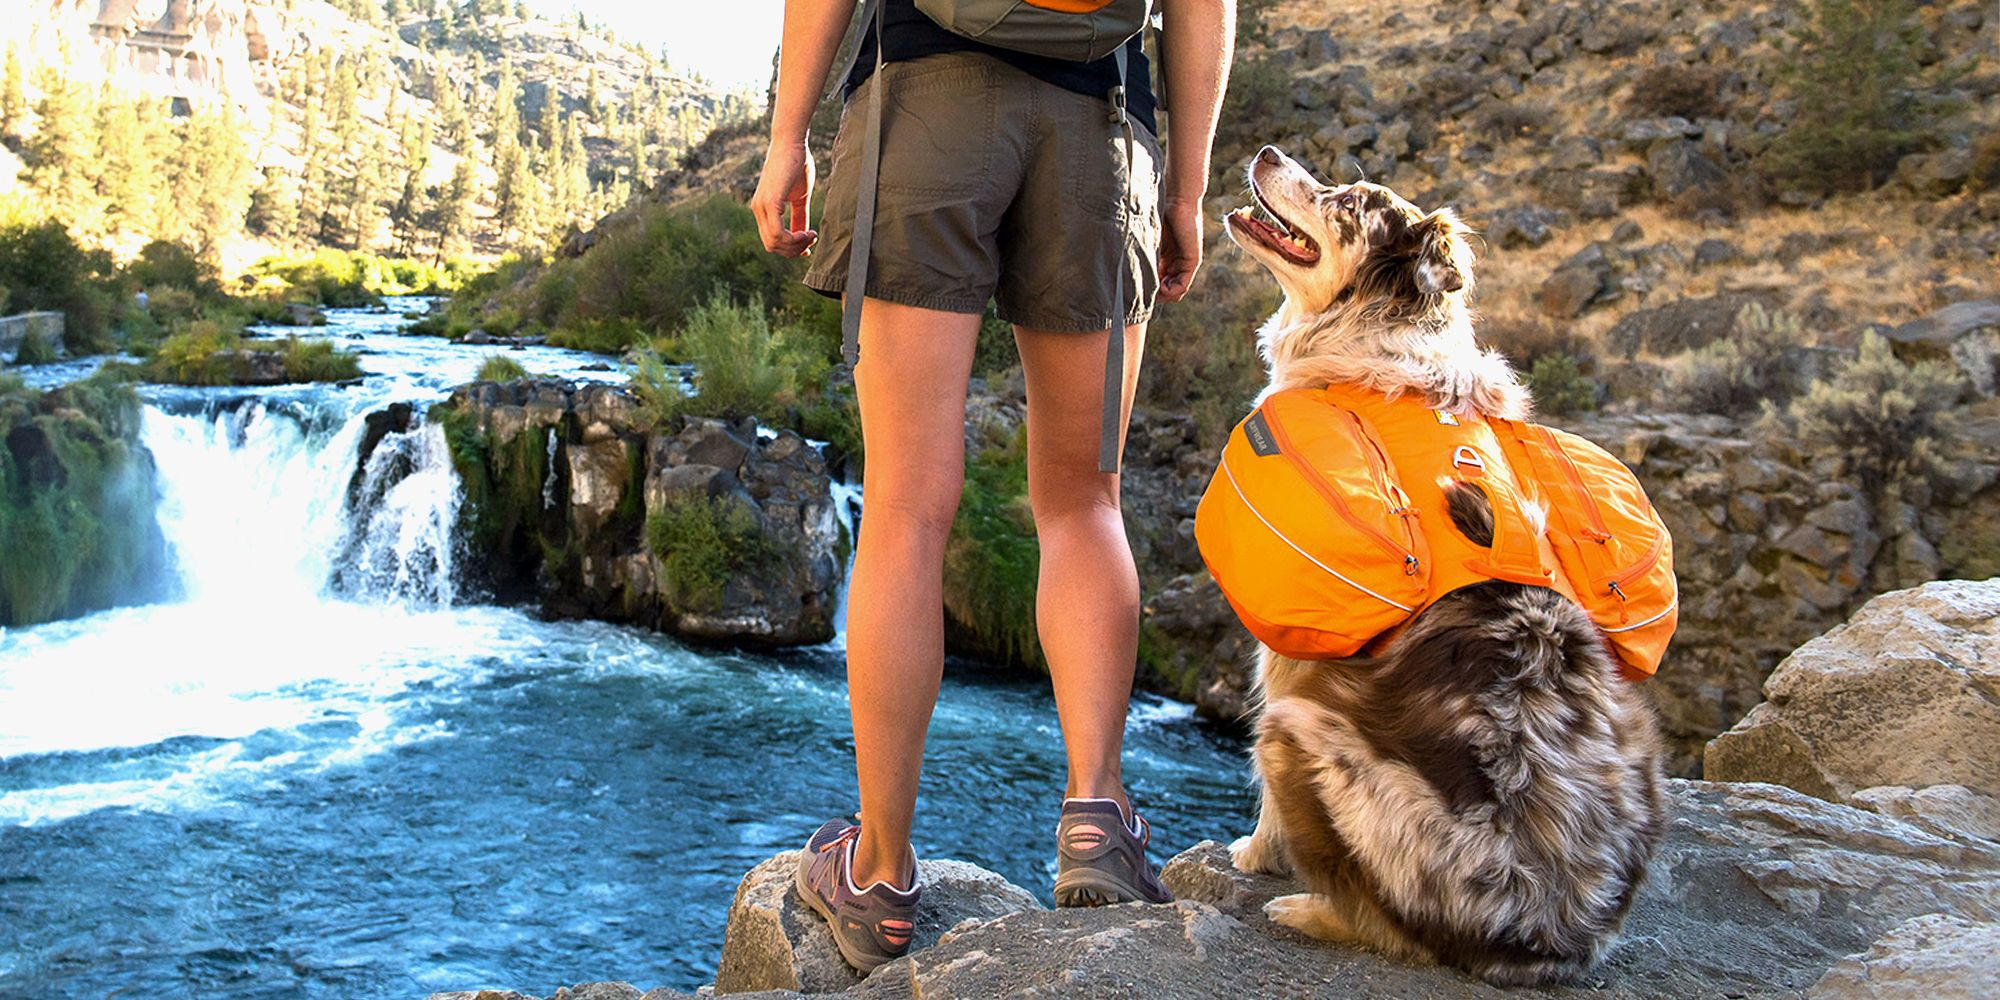 dfadd10c4c 9 Best Dog Backpacks for Hiking and Camping 2018 - Small Backpacks ...